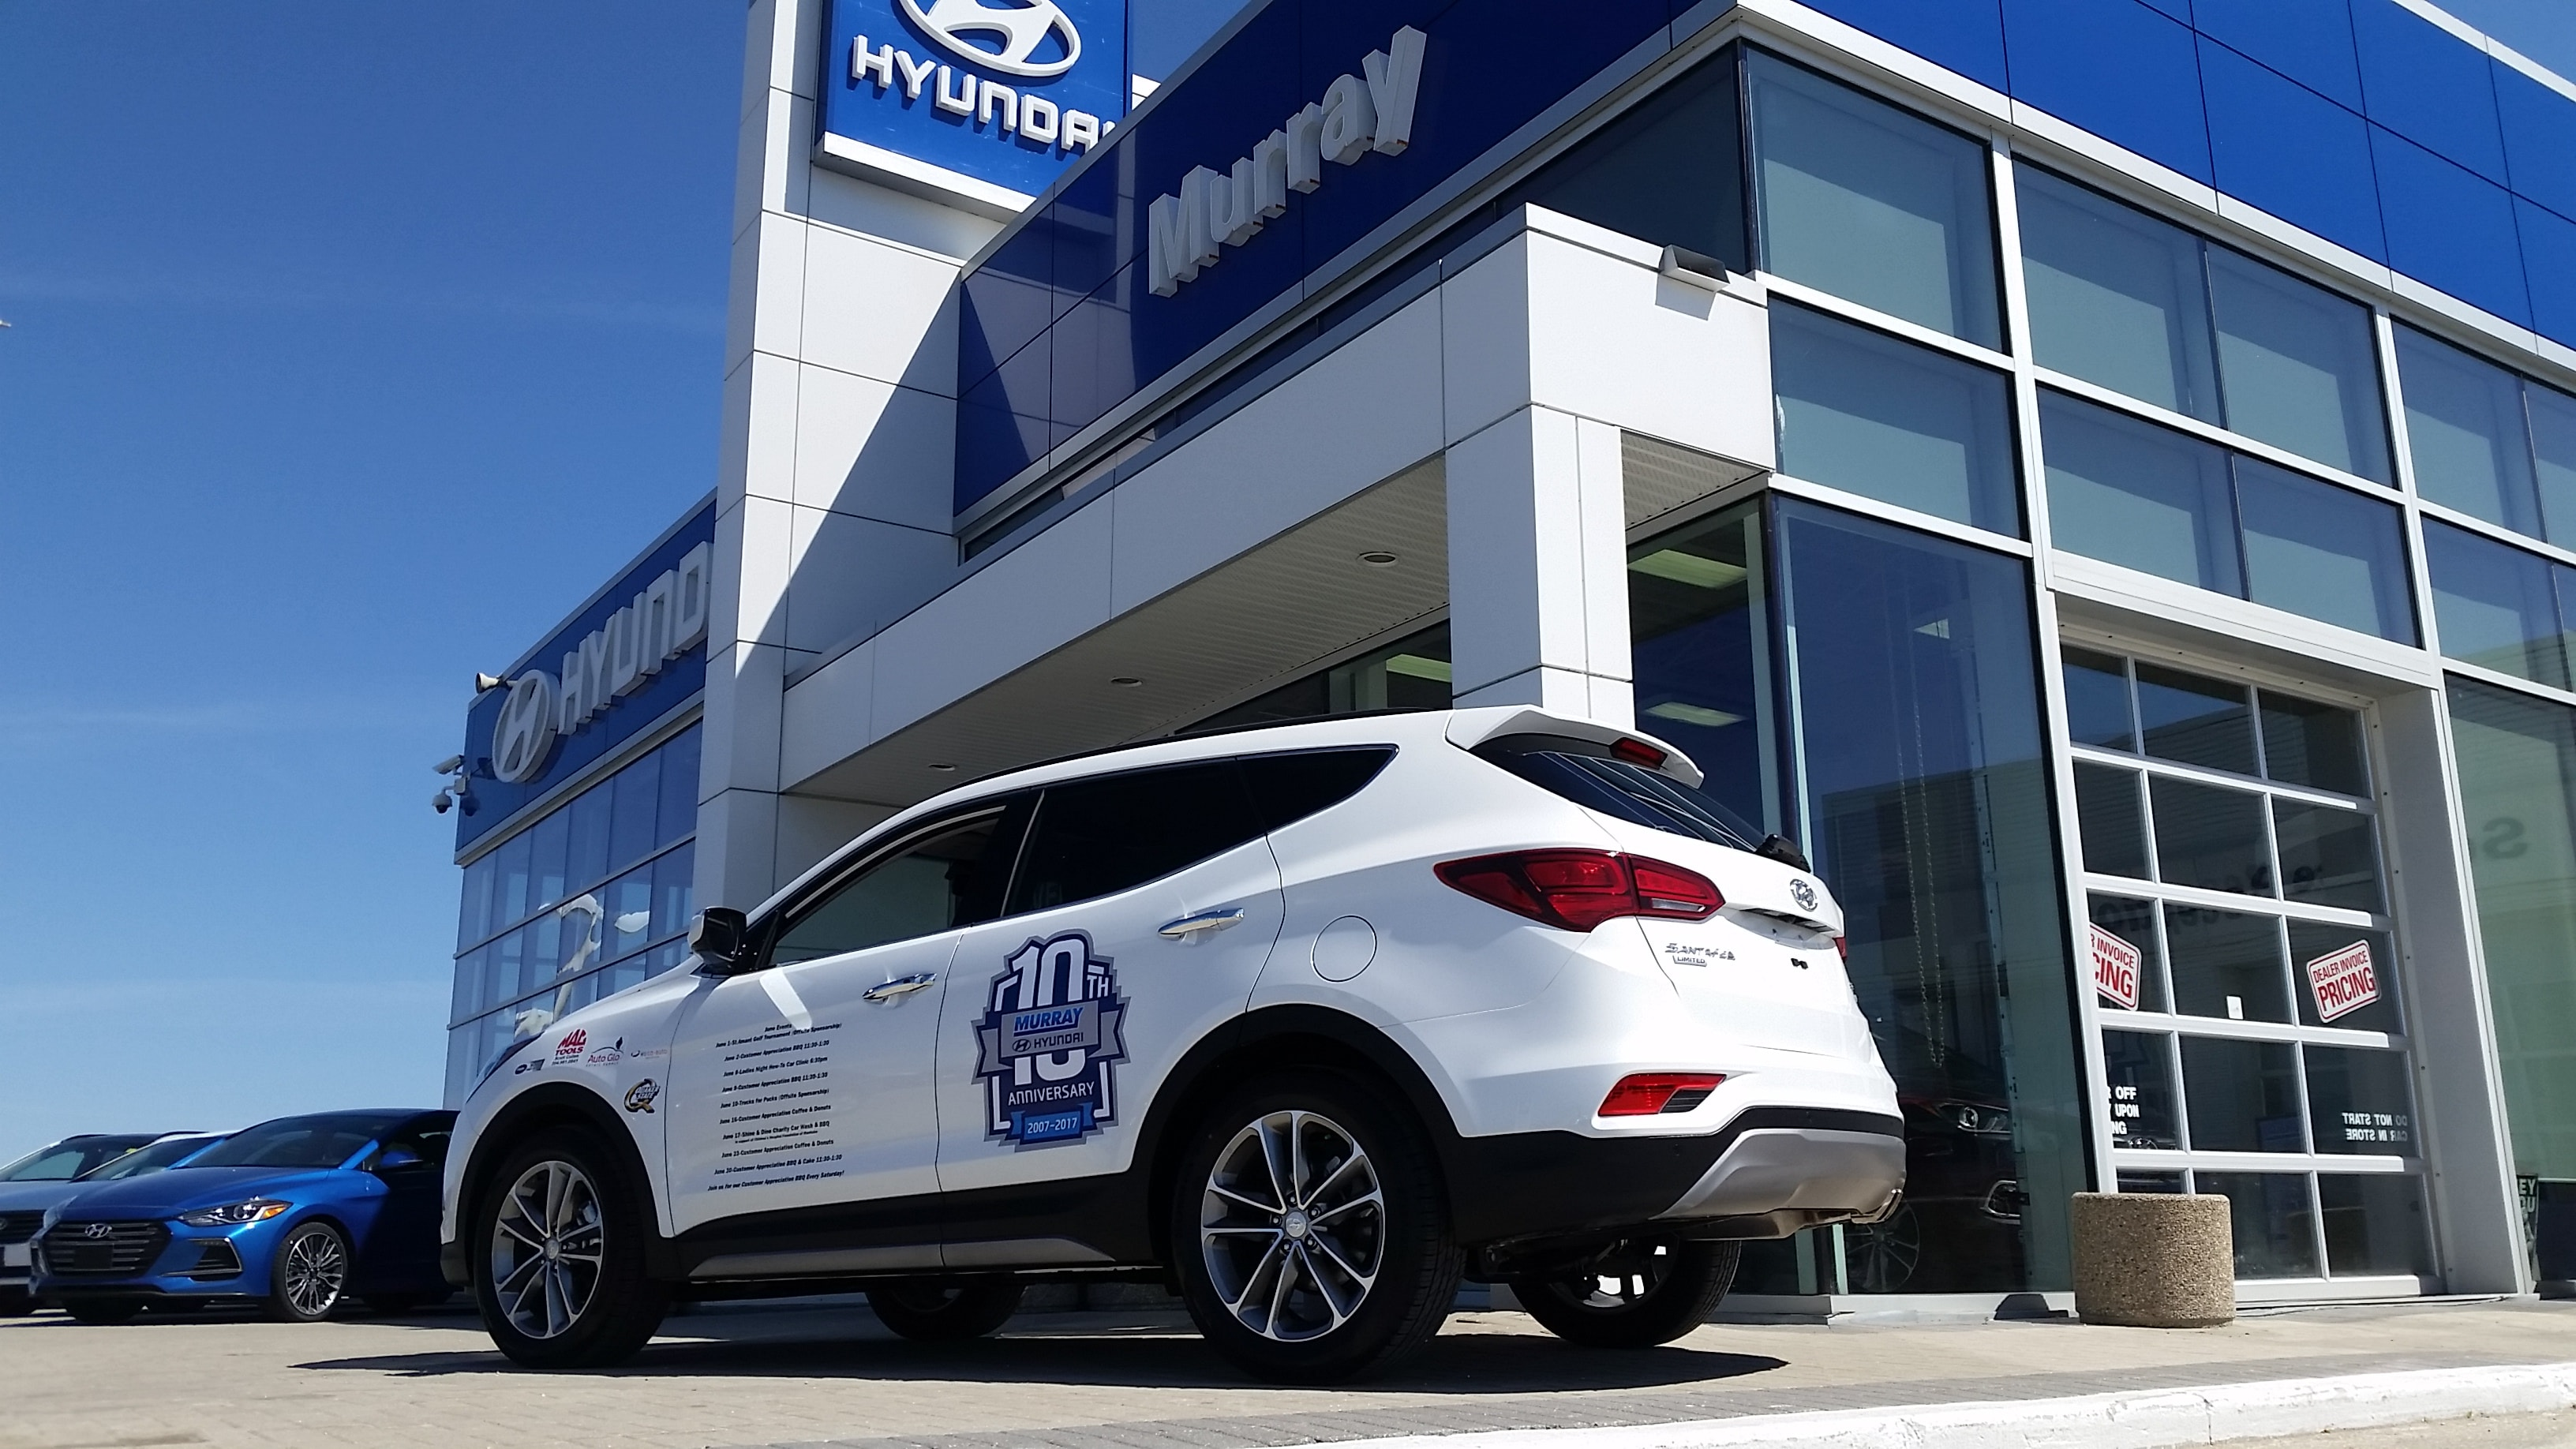 Murray Hyundai Winnipeg | New Hyundai dealership in Winnipeg, MB R3T 5V7